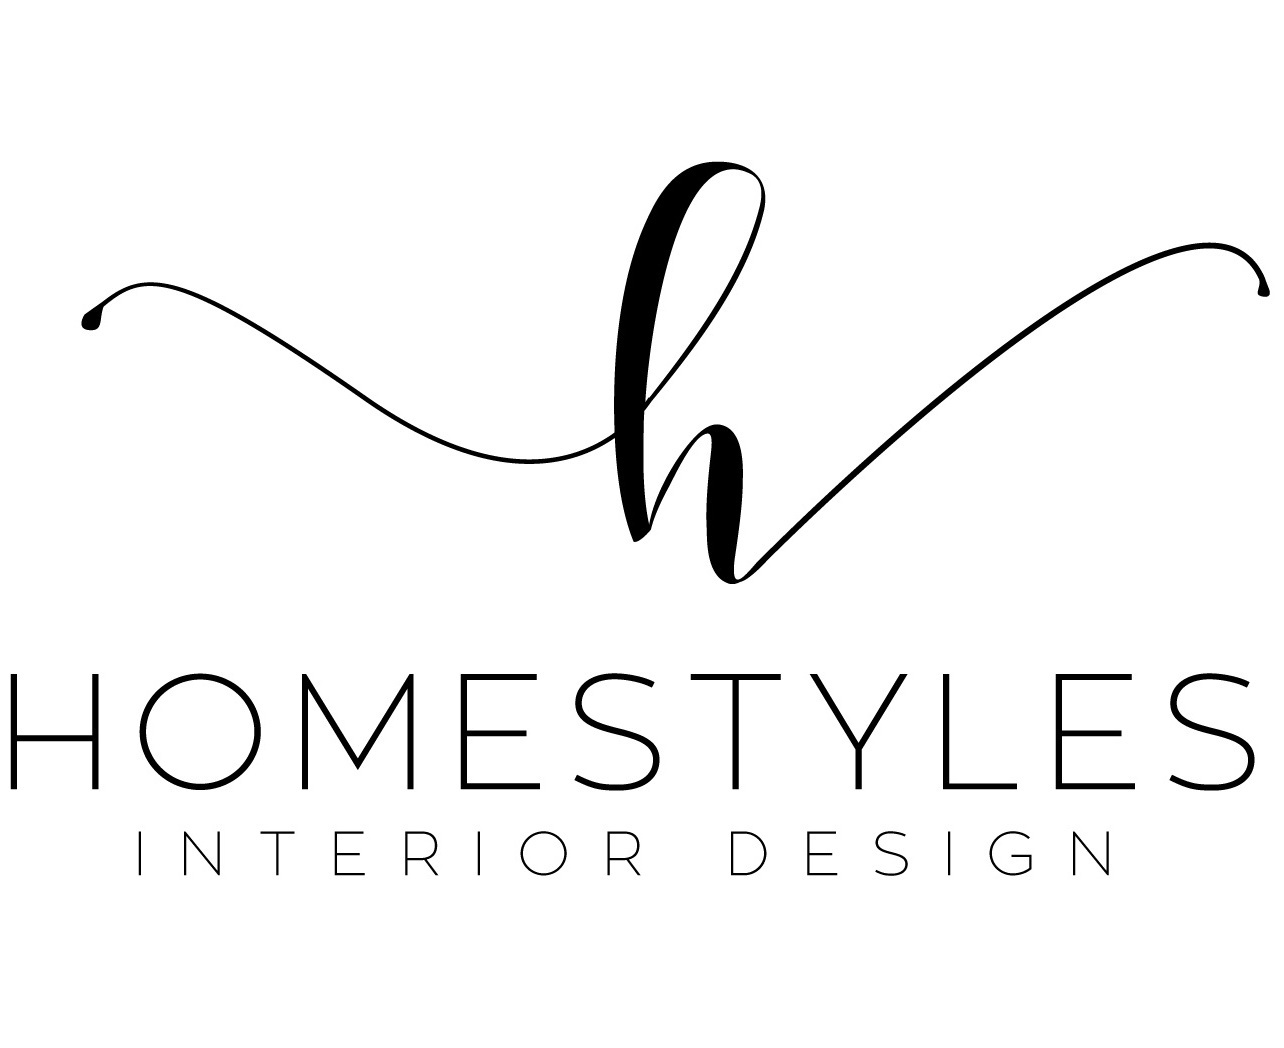 Homestyles Interior Design